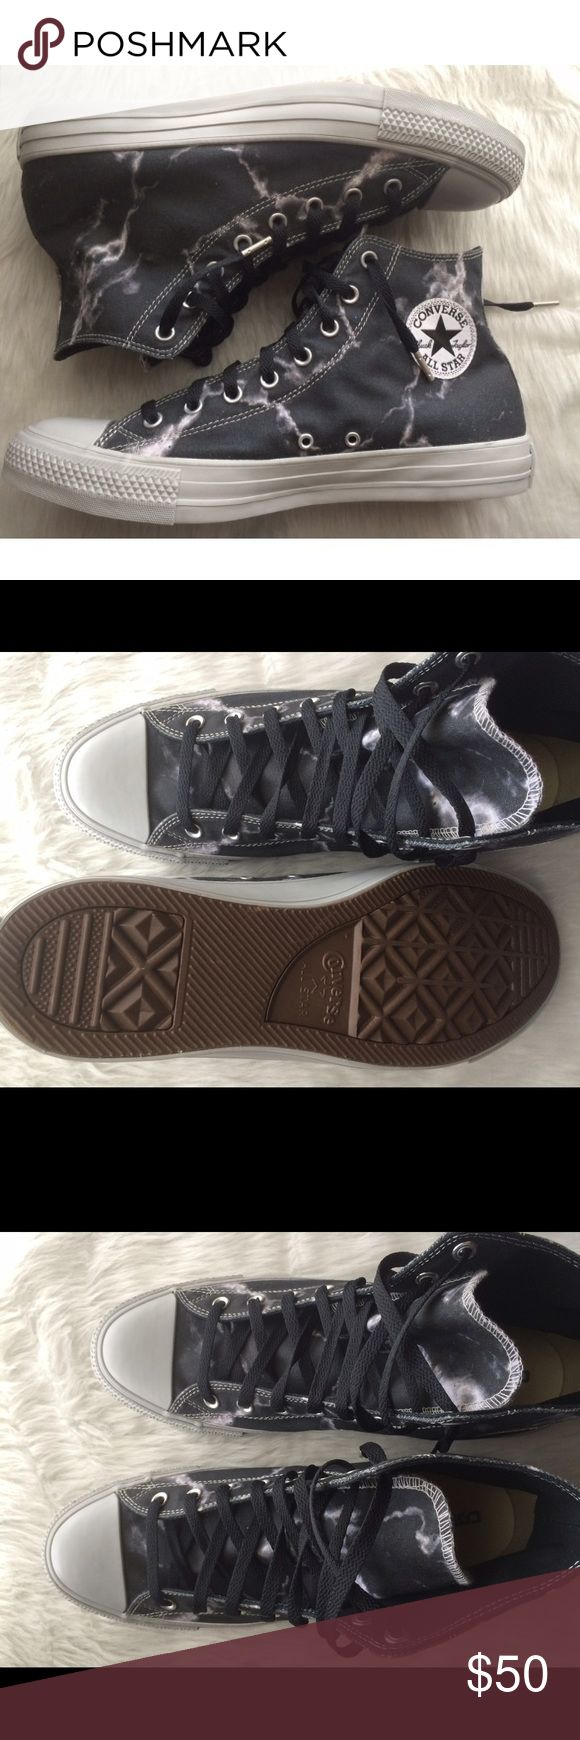 CONVERSE MENS SIZE 12 SHOES  HI TOPS Brand new without box. Shoes were custom made on the Nike website. Nike iD's. Converse Shoes Sneakers